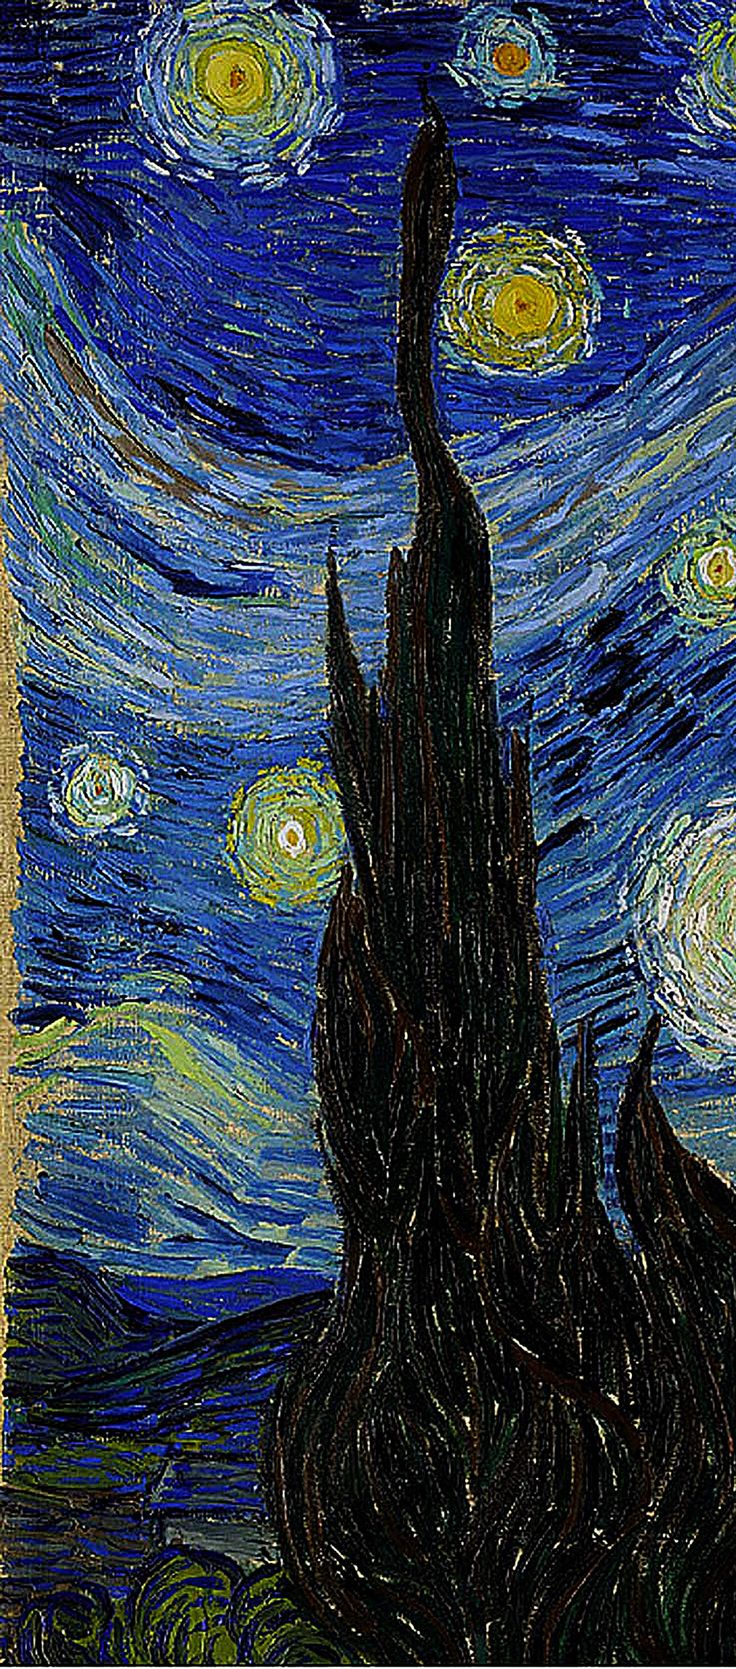 Vincent Van Gogh 'Starry Night' detail